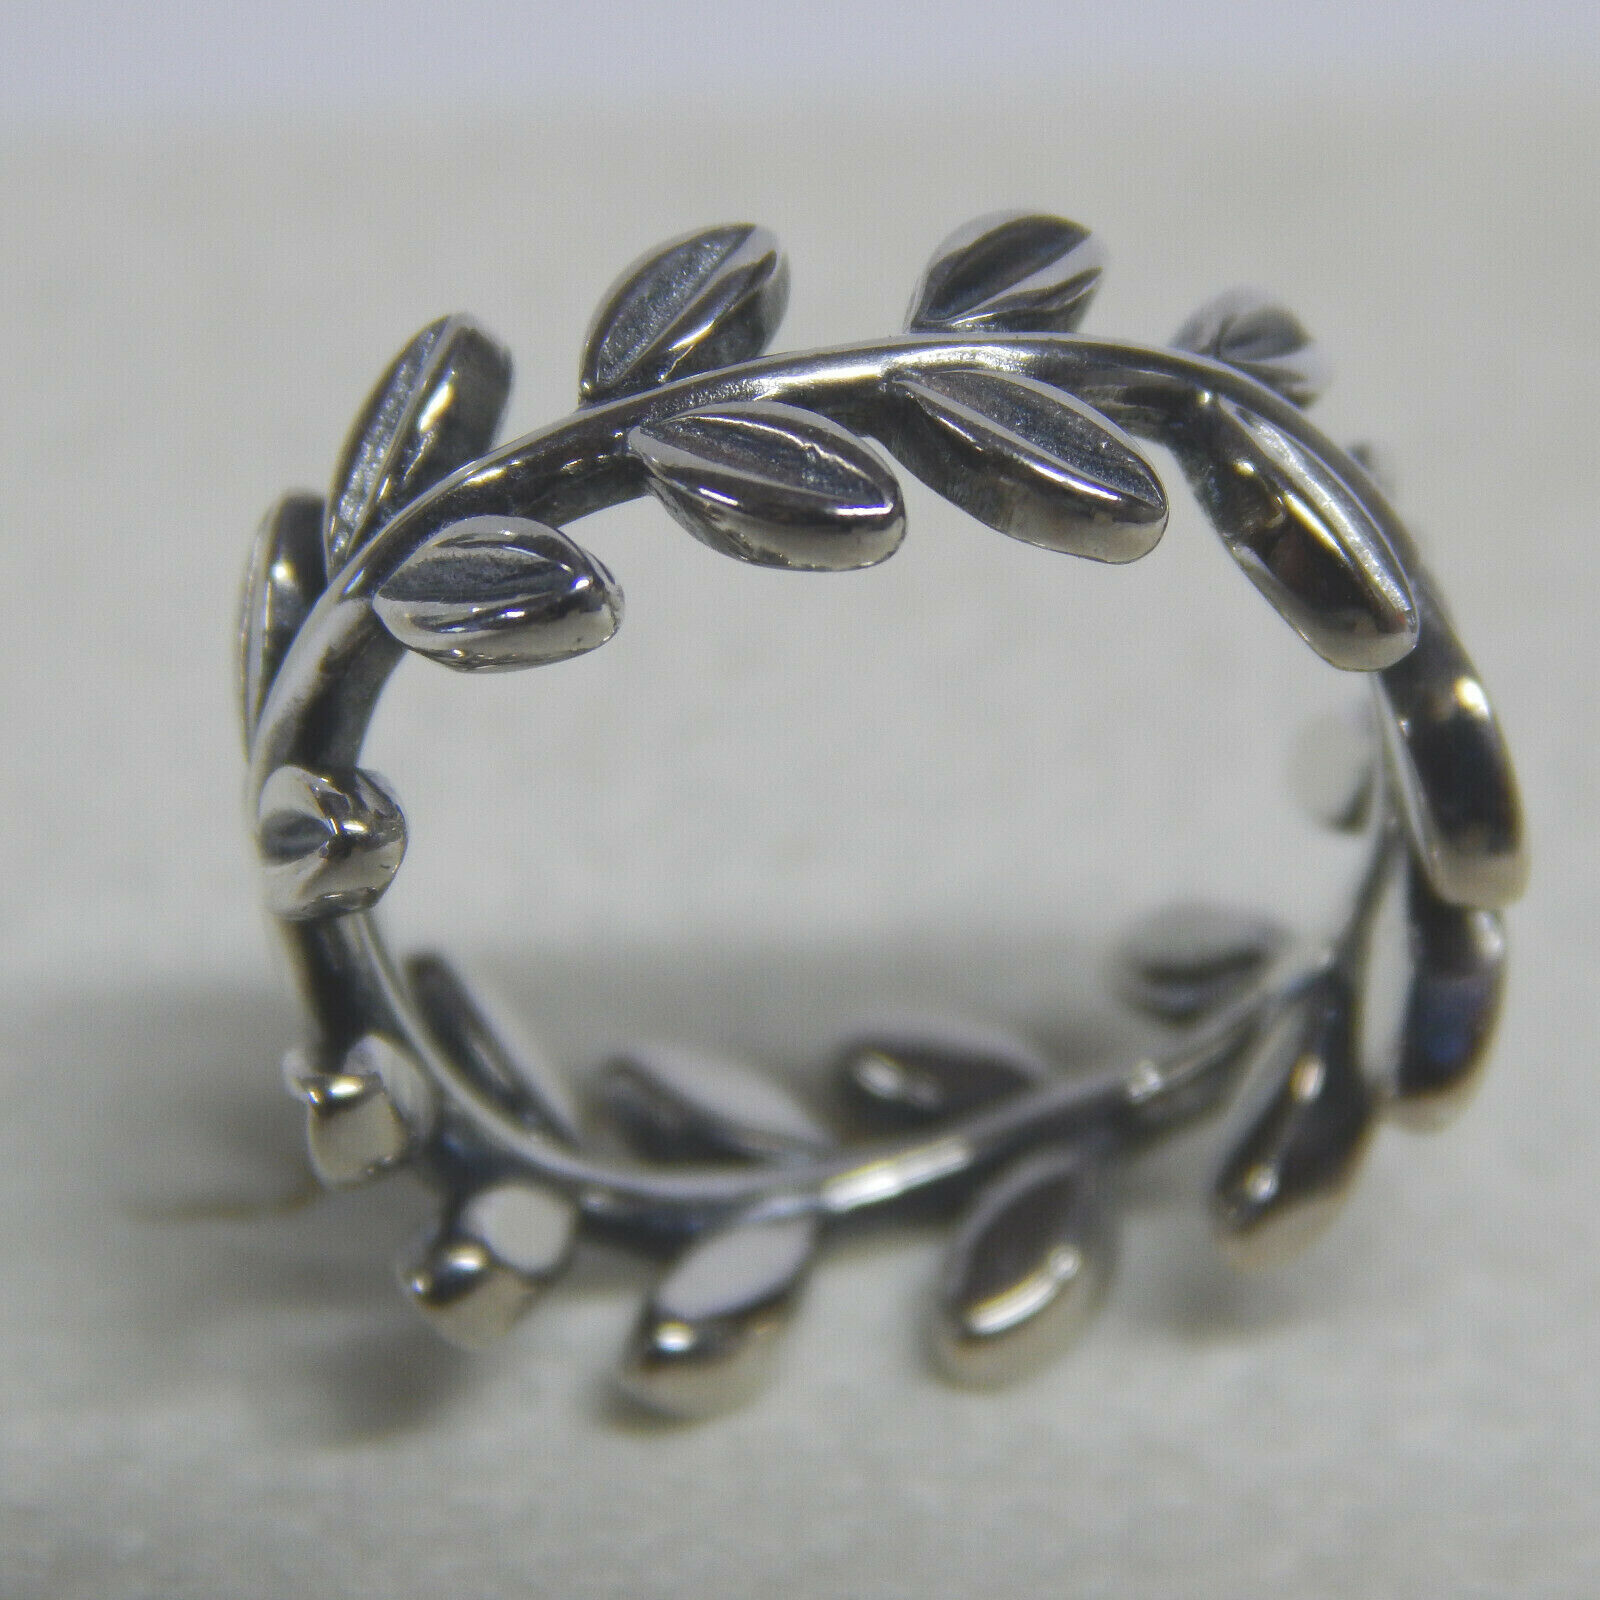 21b5fdc46 Authentic PANDORA 190922 Sterling Laurel Wreath Ring Size 6.5 for ...